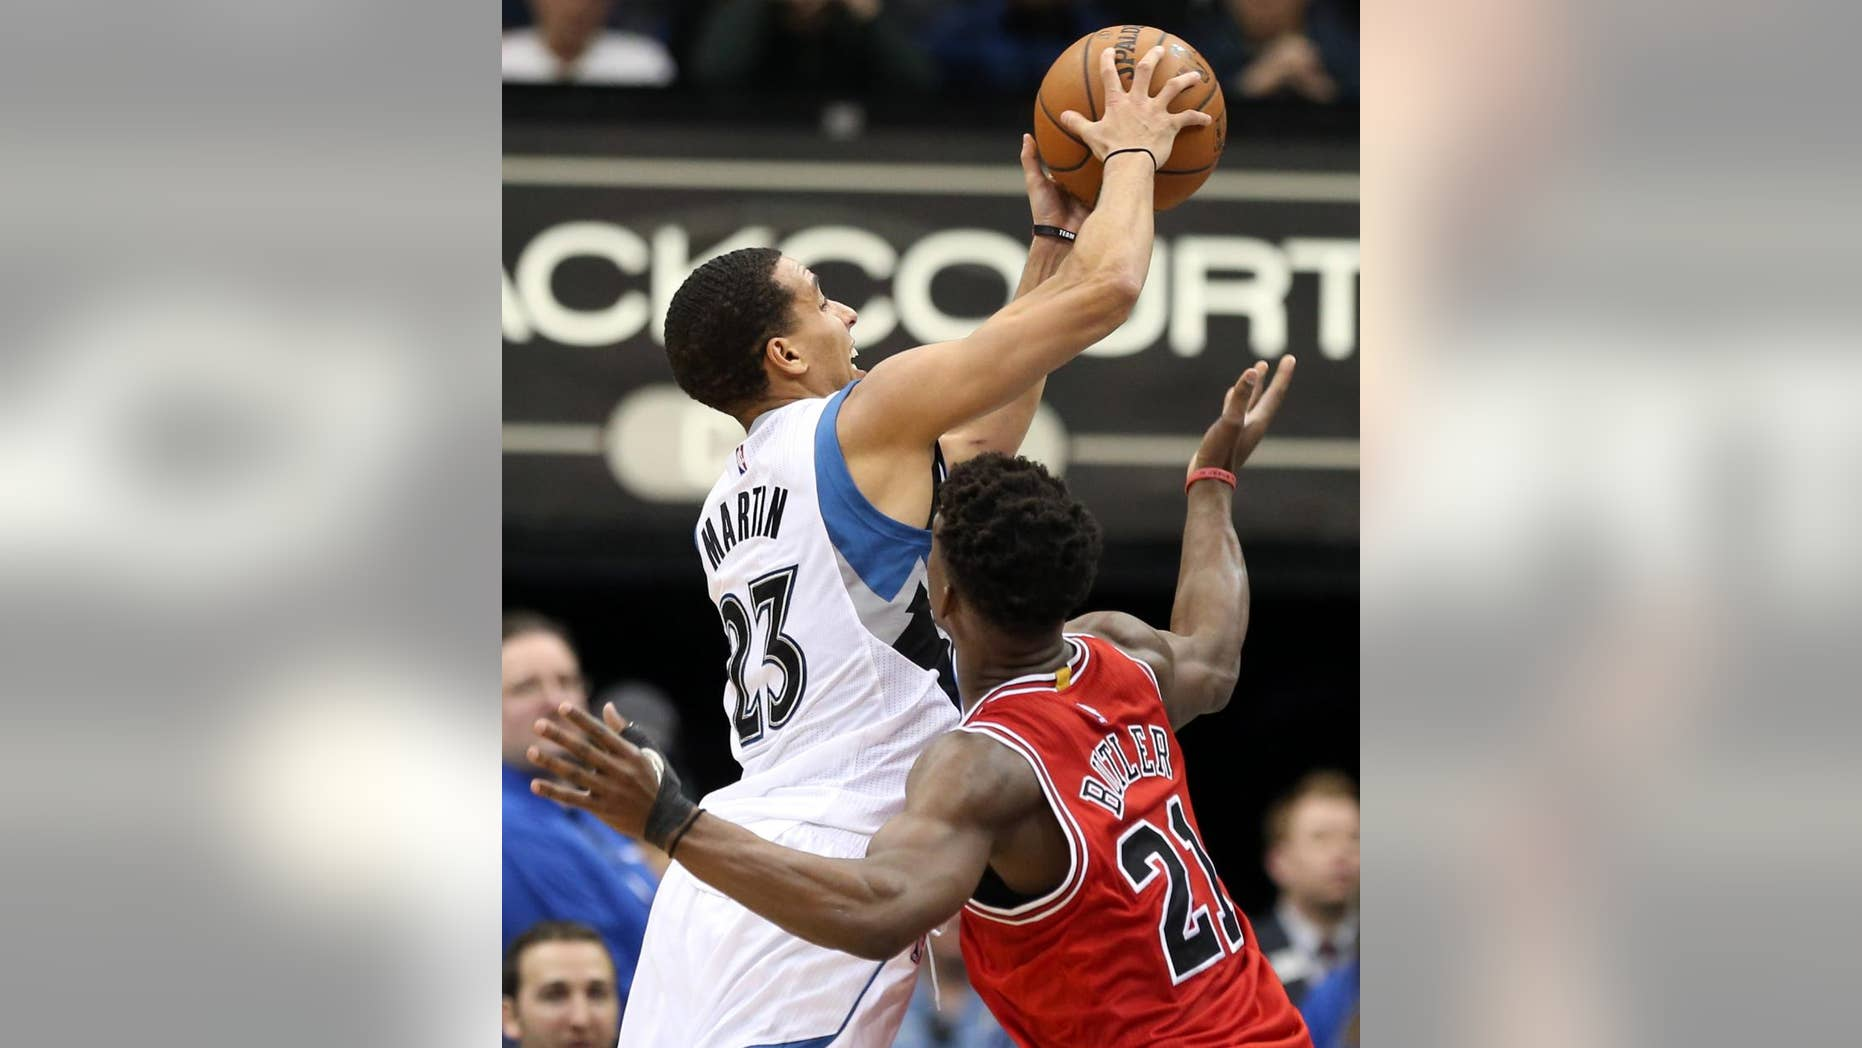 Minnesota Timberwolves' Kevin Martin , left, attempts a shot in front of Chicago Bulls' Jimmy Butler in the second half of an NBA basketball game, Saturday, Nov. 1, 2014, in Minneapolis. The Bulls won 106-105. MArtin led the Timberwolves with 33 points and Butler led the Bulls with 24.  (AP Photo/Jim Mone)